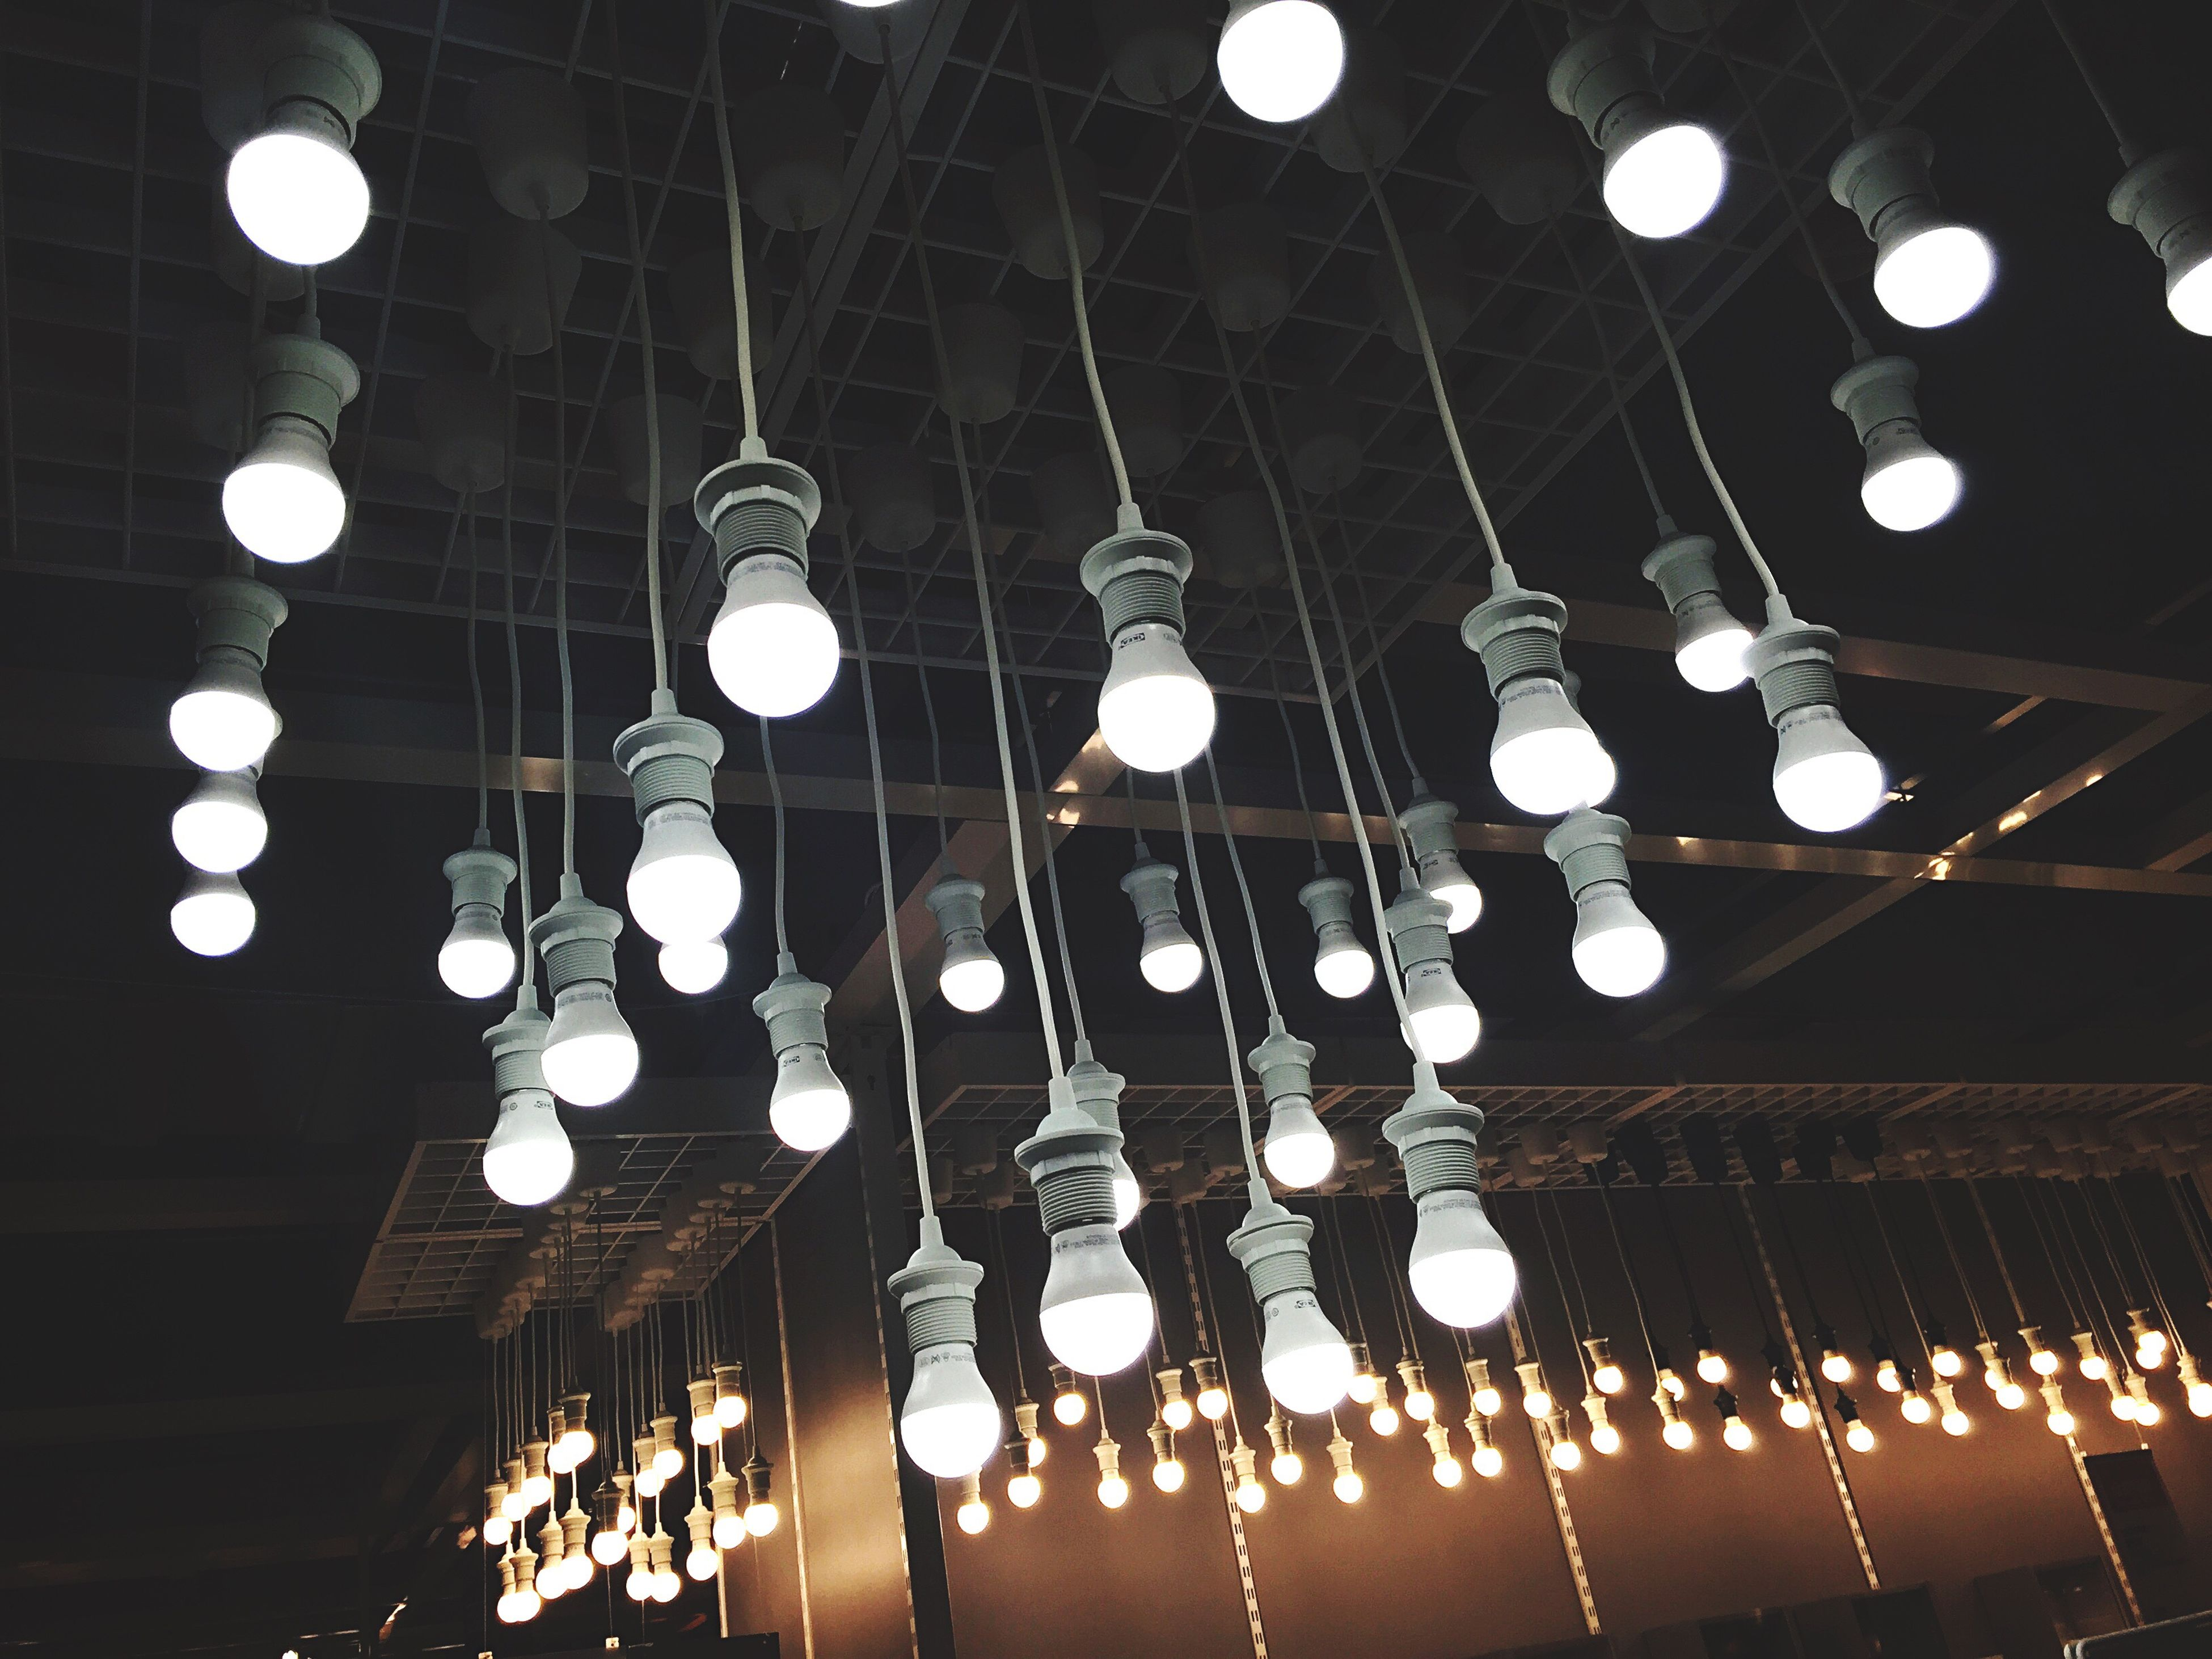 hanging, low angle view, illuminated, lighting equipment, large group of objects, decoration, indoors, in a row, light - natural phenomenon, ceiling, electric light, light bulb, decor, pendant light, order, variation, culture, arrangement, abundance, round, diminishing perspective, repetition, no people